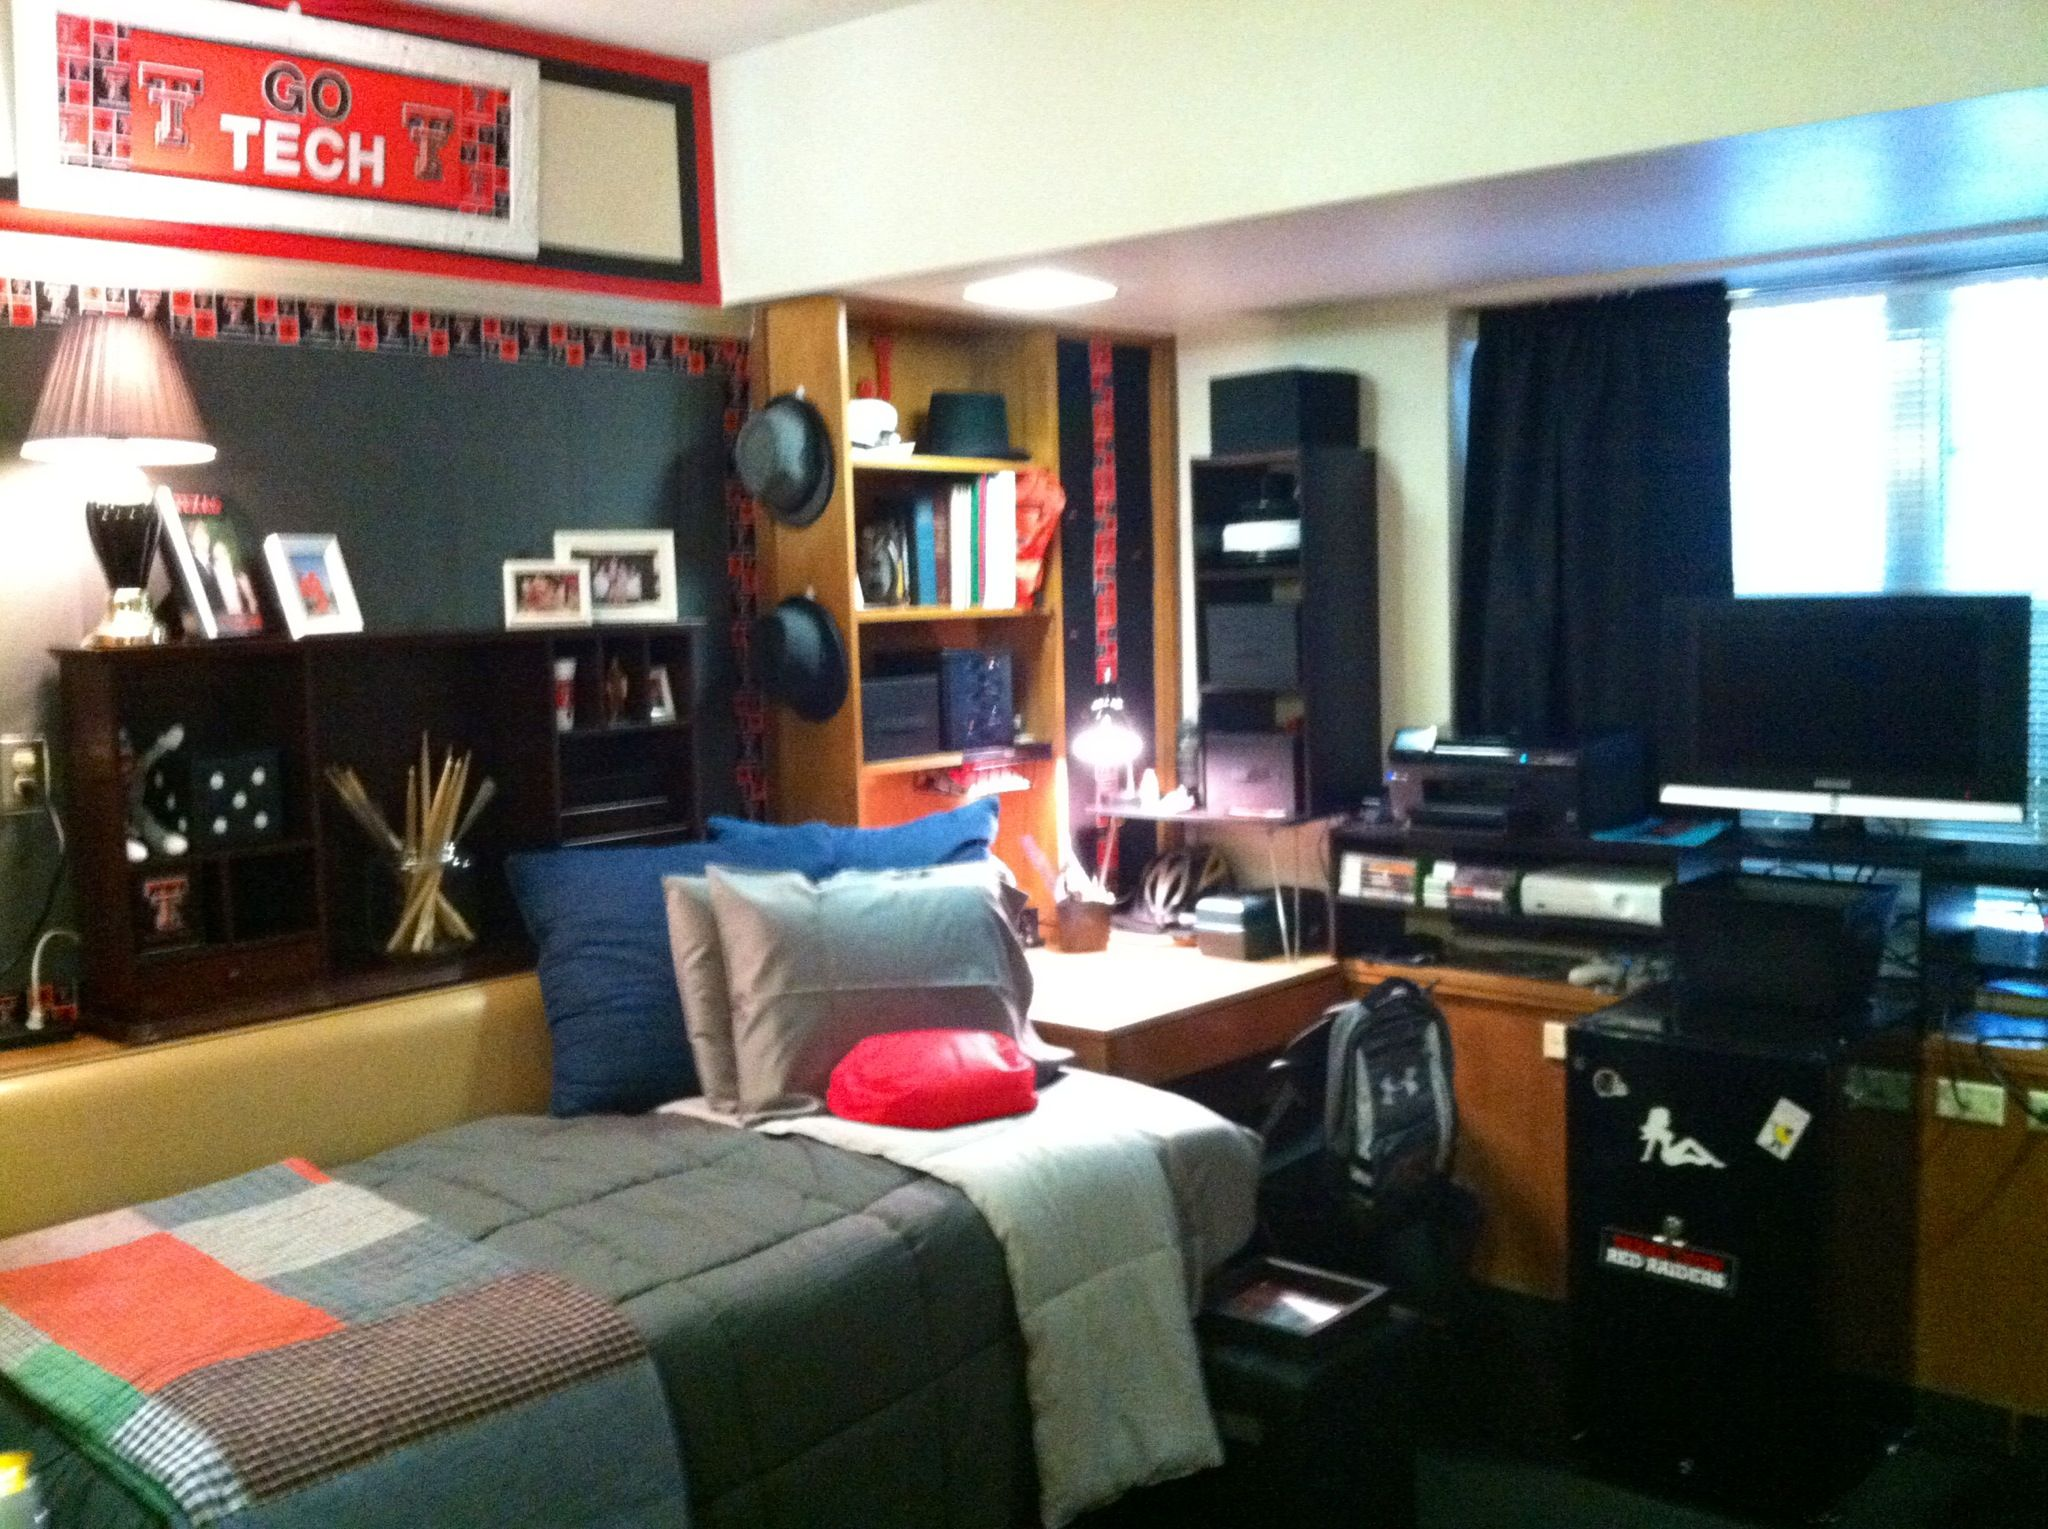 james dorm room at texas tech. | dorm room | pinterest | dorm room